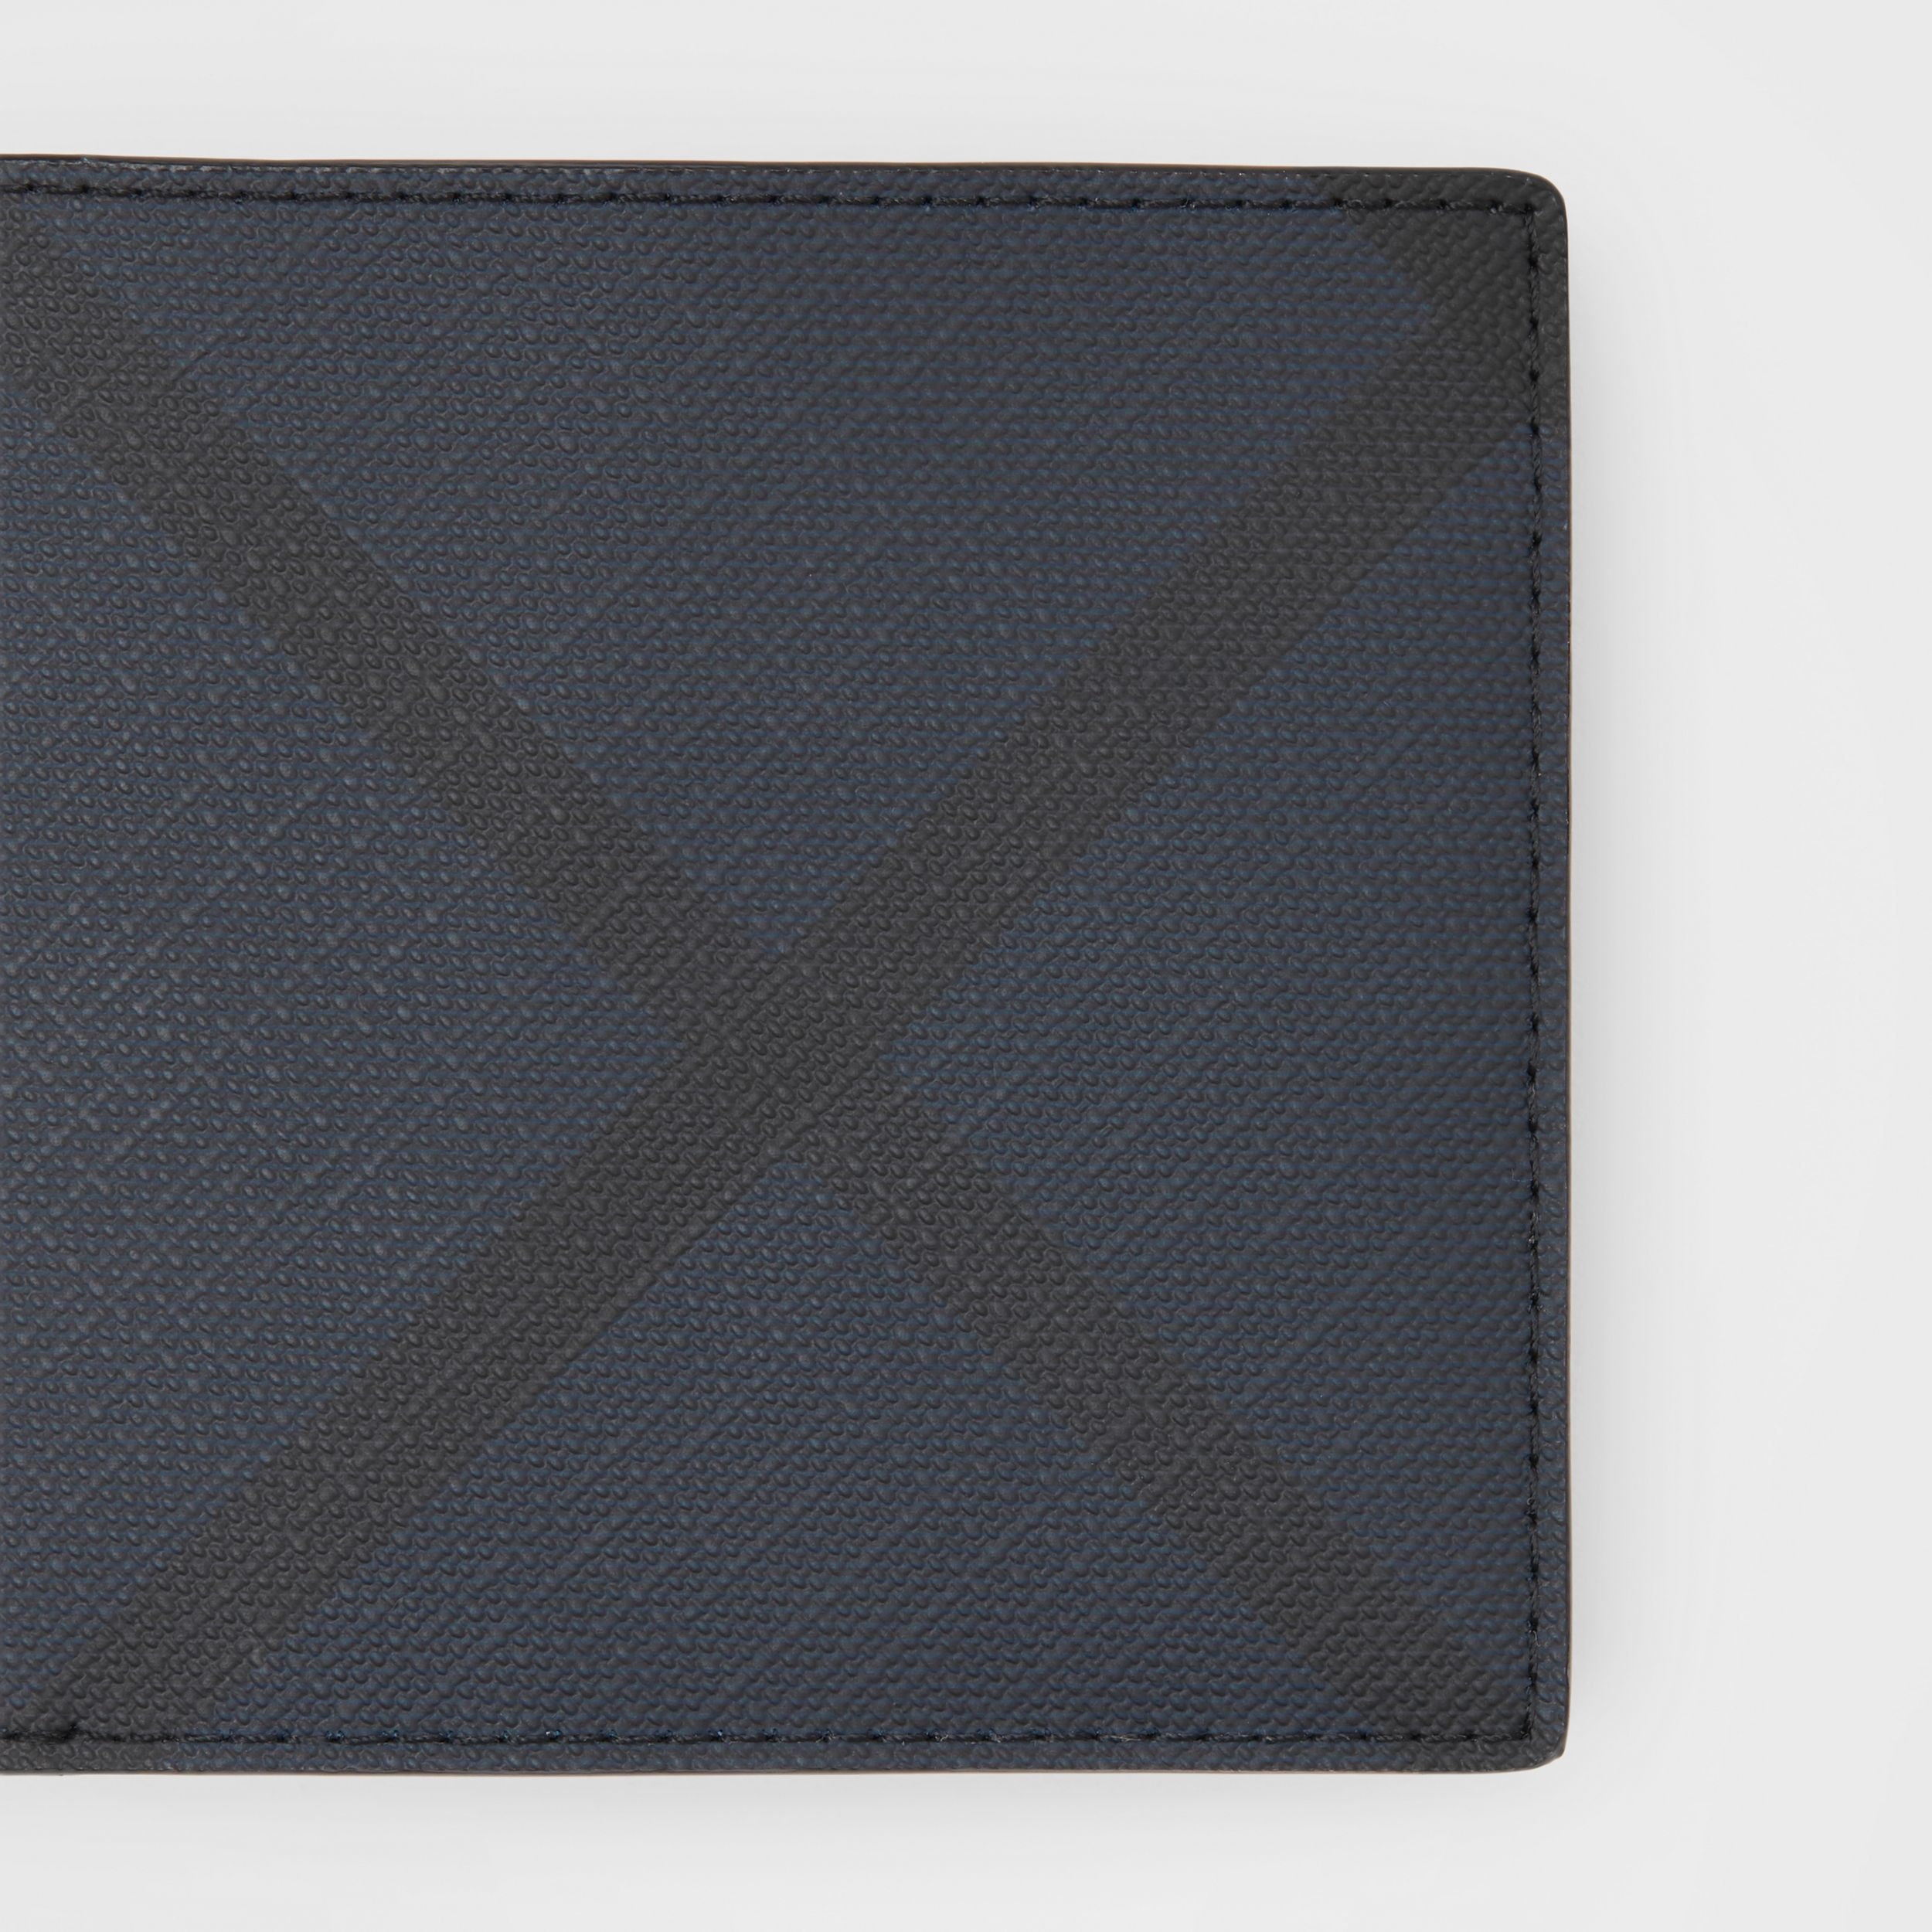 London Check and Leather International Bifold Wallet in Navy - Men | Burberry Hong Kong S.A.R. - 2